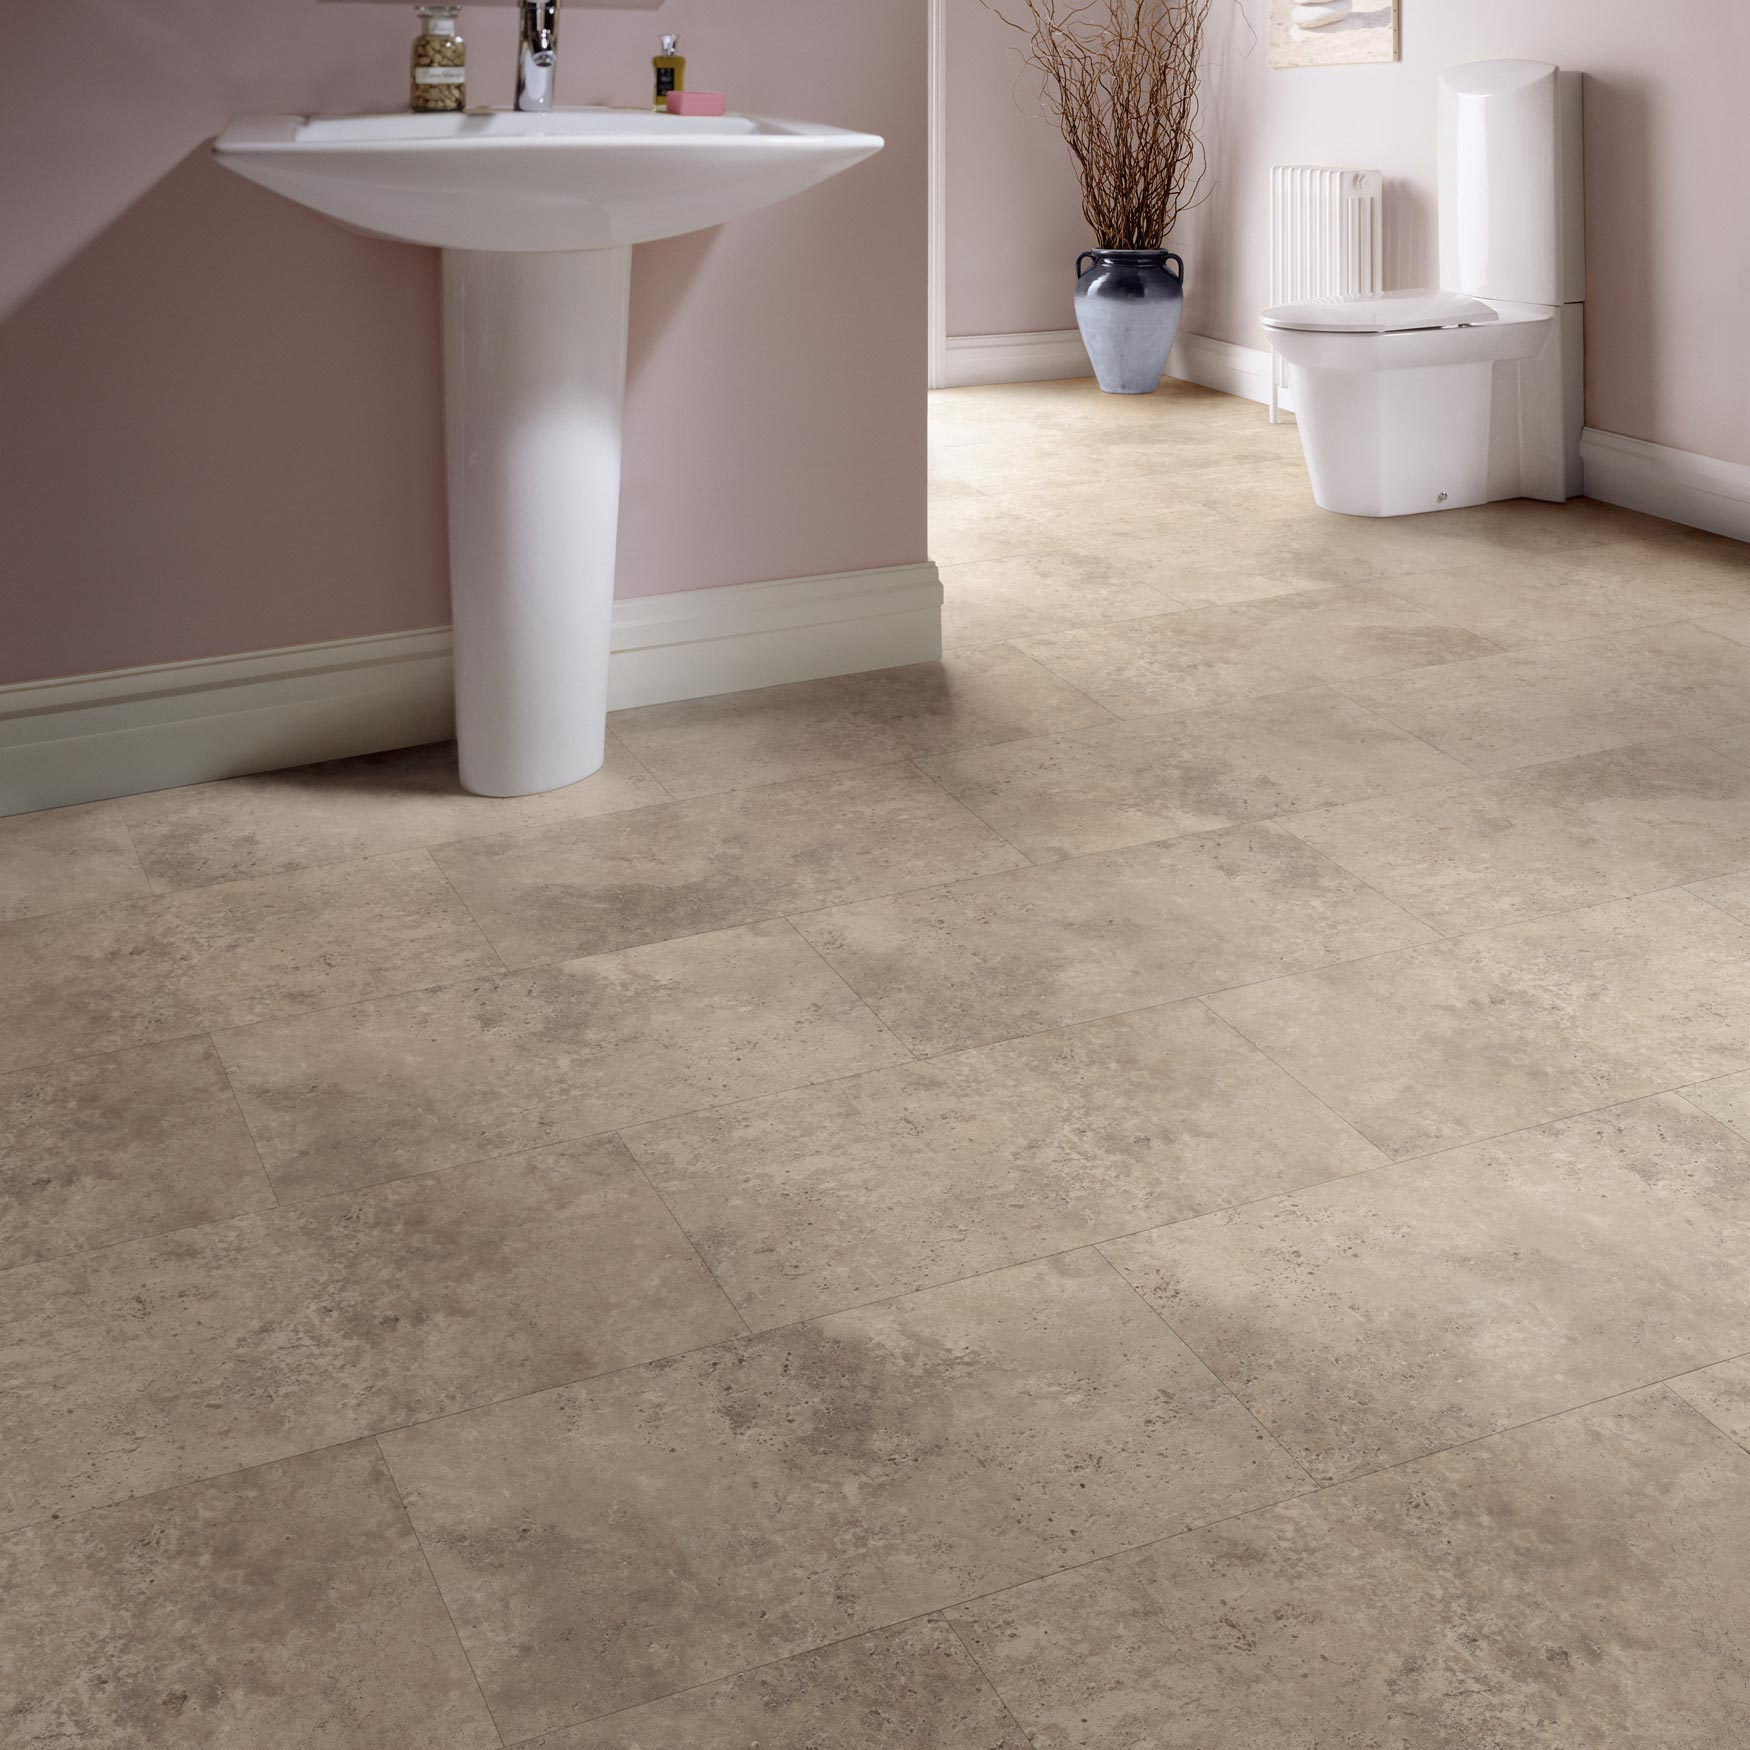 Karndean palio volterra ct4301 clic vinyl tile factory for Vinyl floor tiles in bathroom